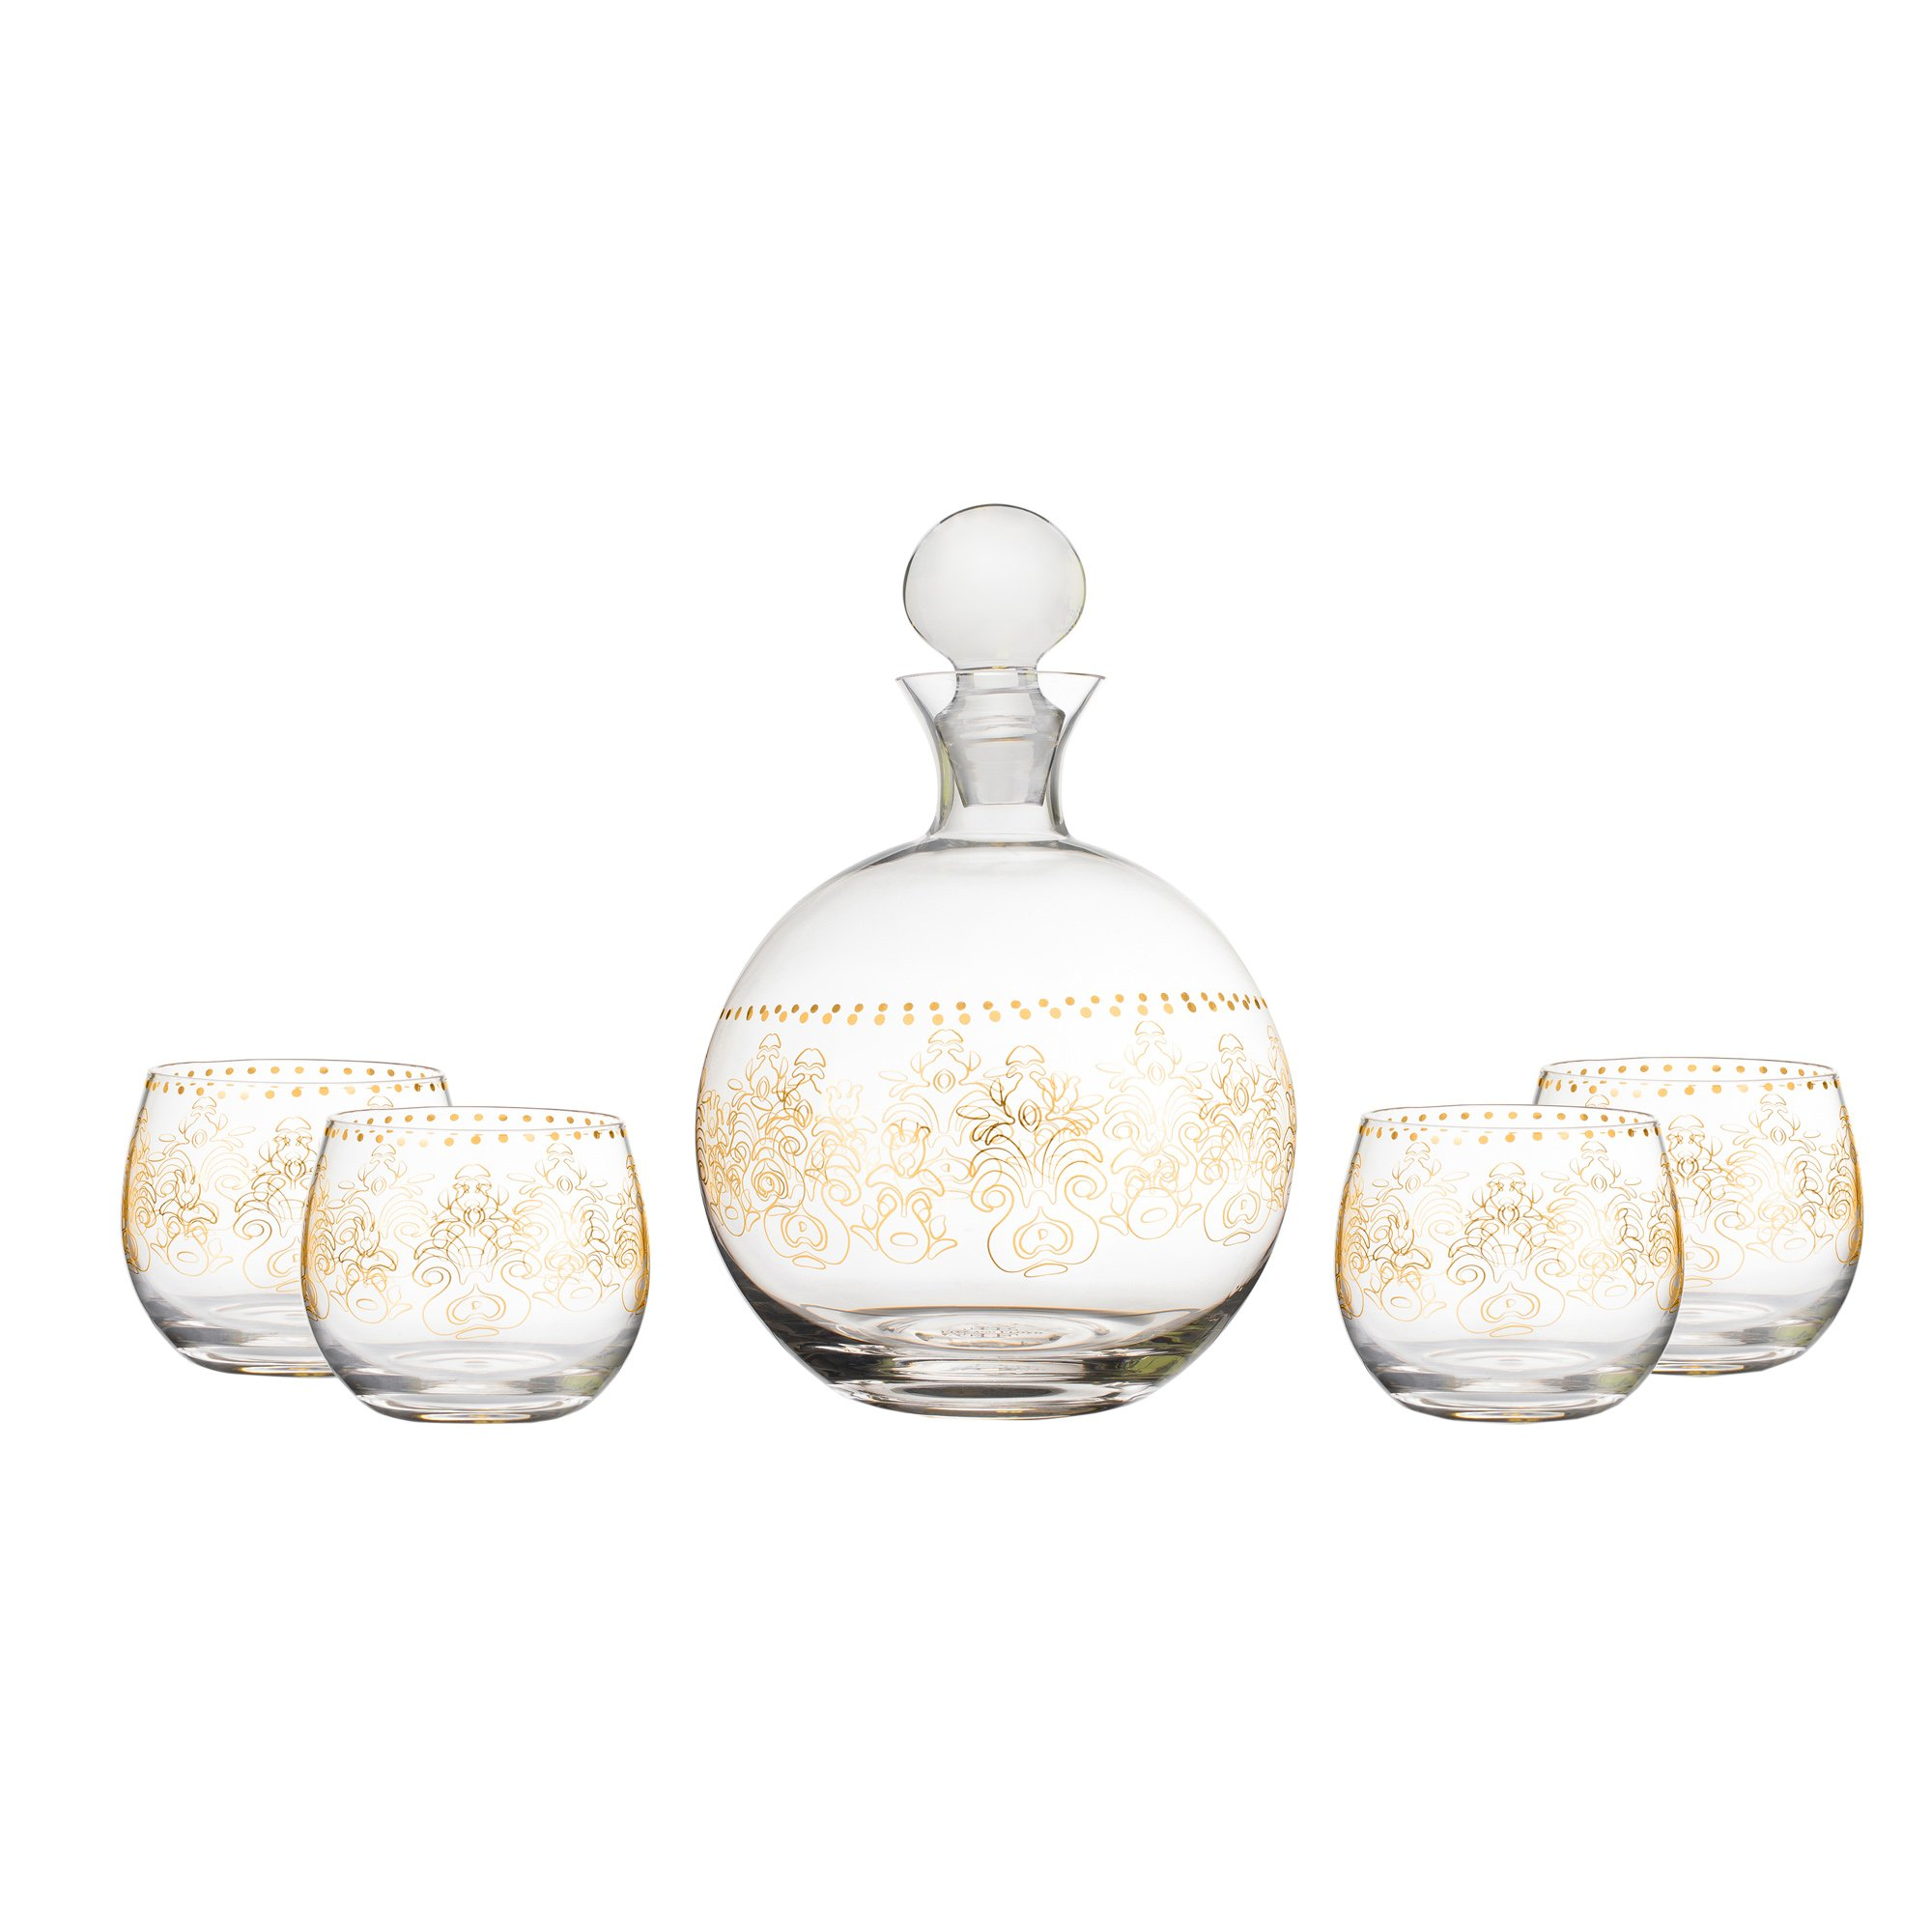 Fifth Avenue Crystal 210325-5 Round Lace 5 Piece Decanter Set, Gold